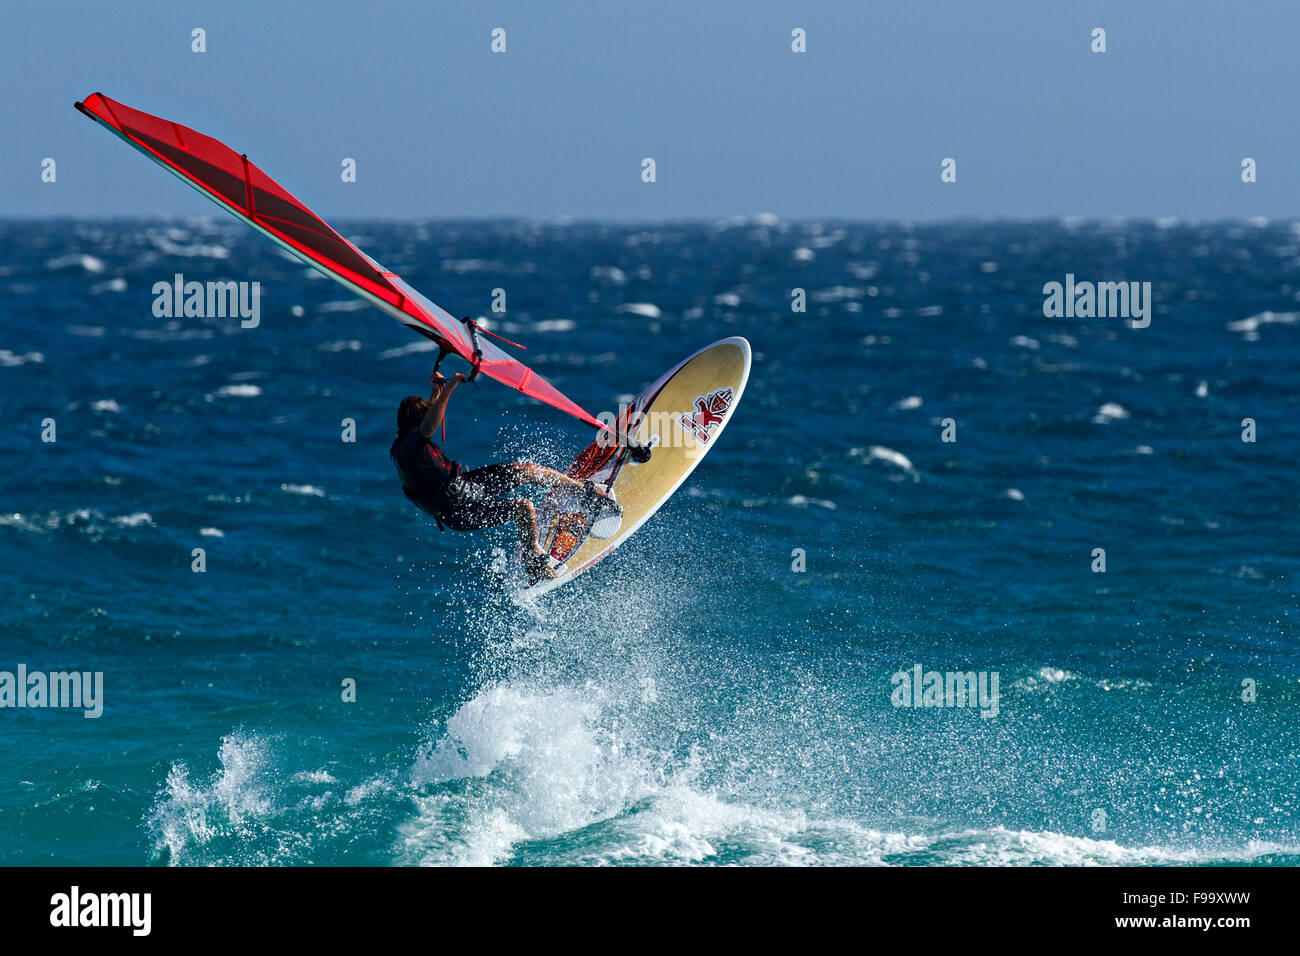 Wind Surfer vague saut, Esperance, l'ouest de l'Australie. Photo Stock